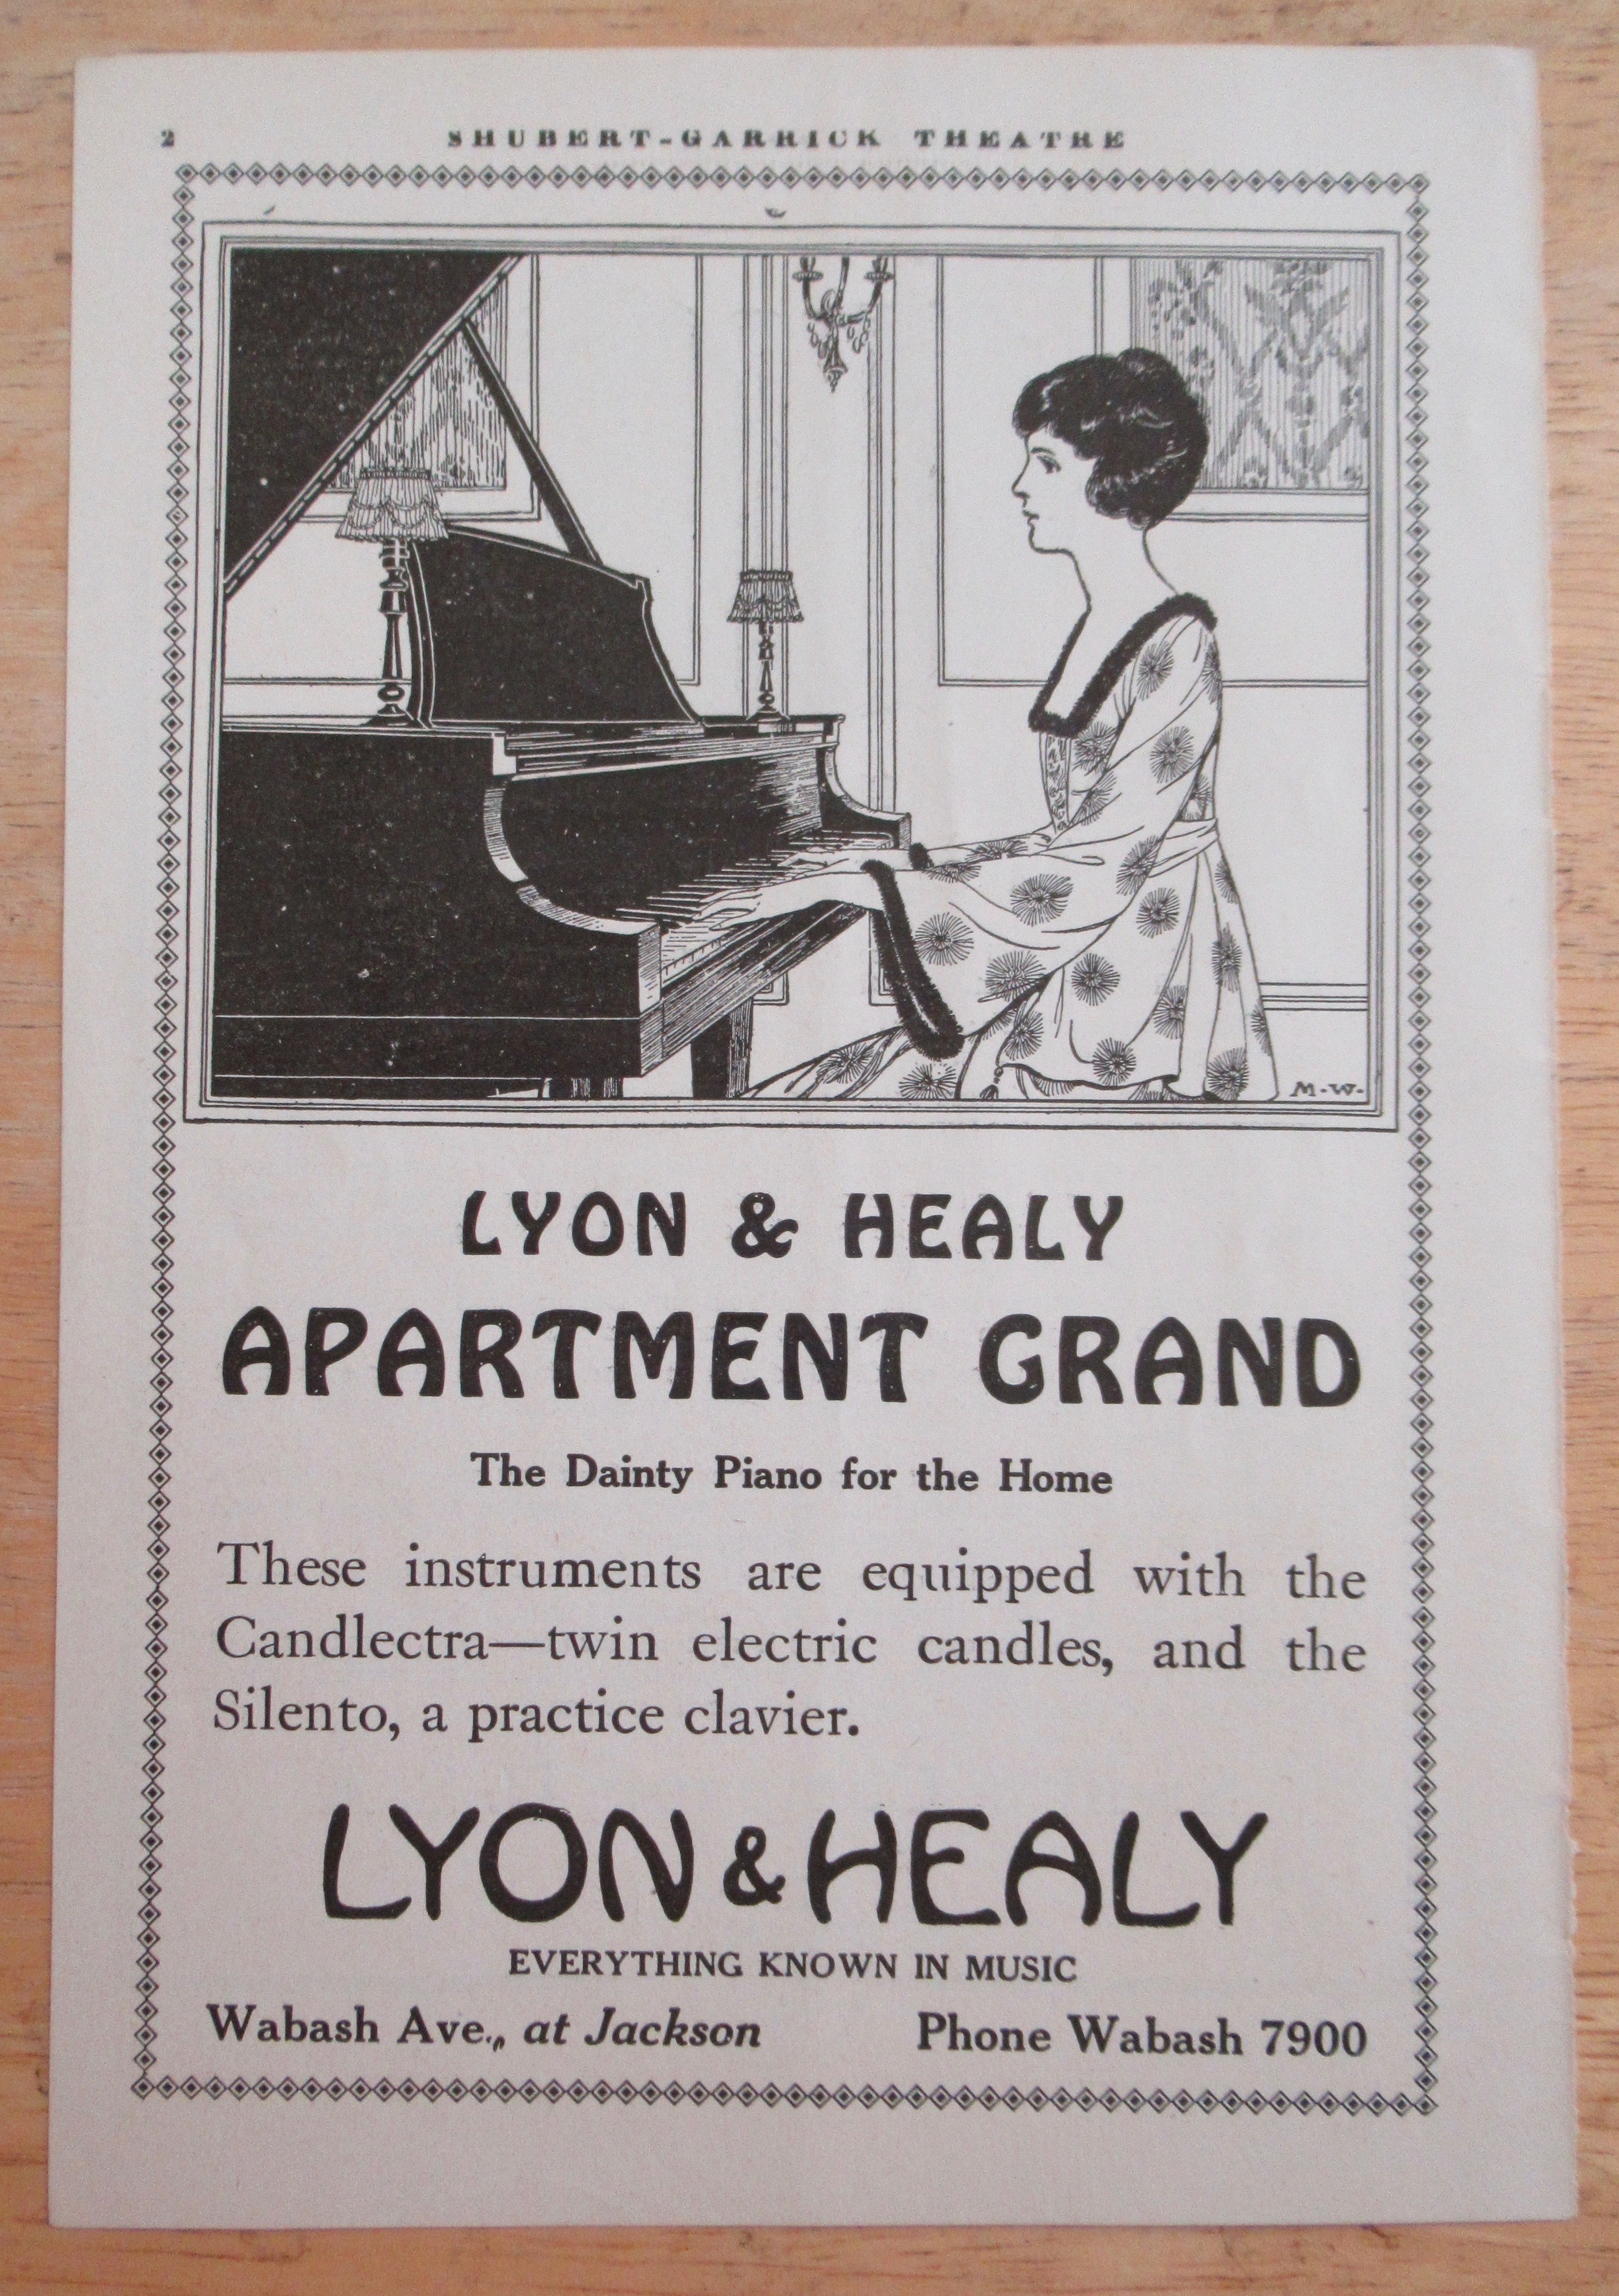 Tias Mall Ads By Dee Household Furniture 1919 Lyon Healy Apartment Grand Piano W Woman Playing